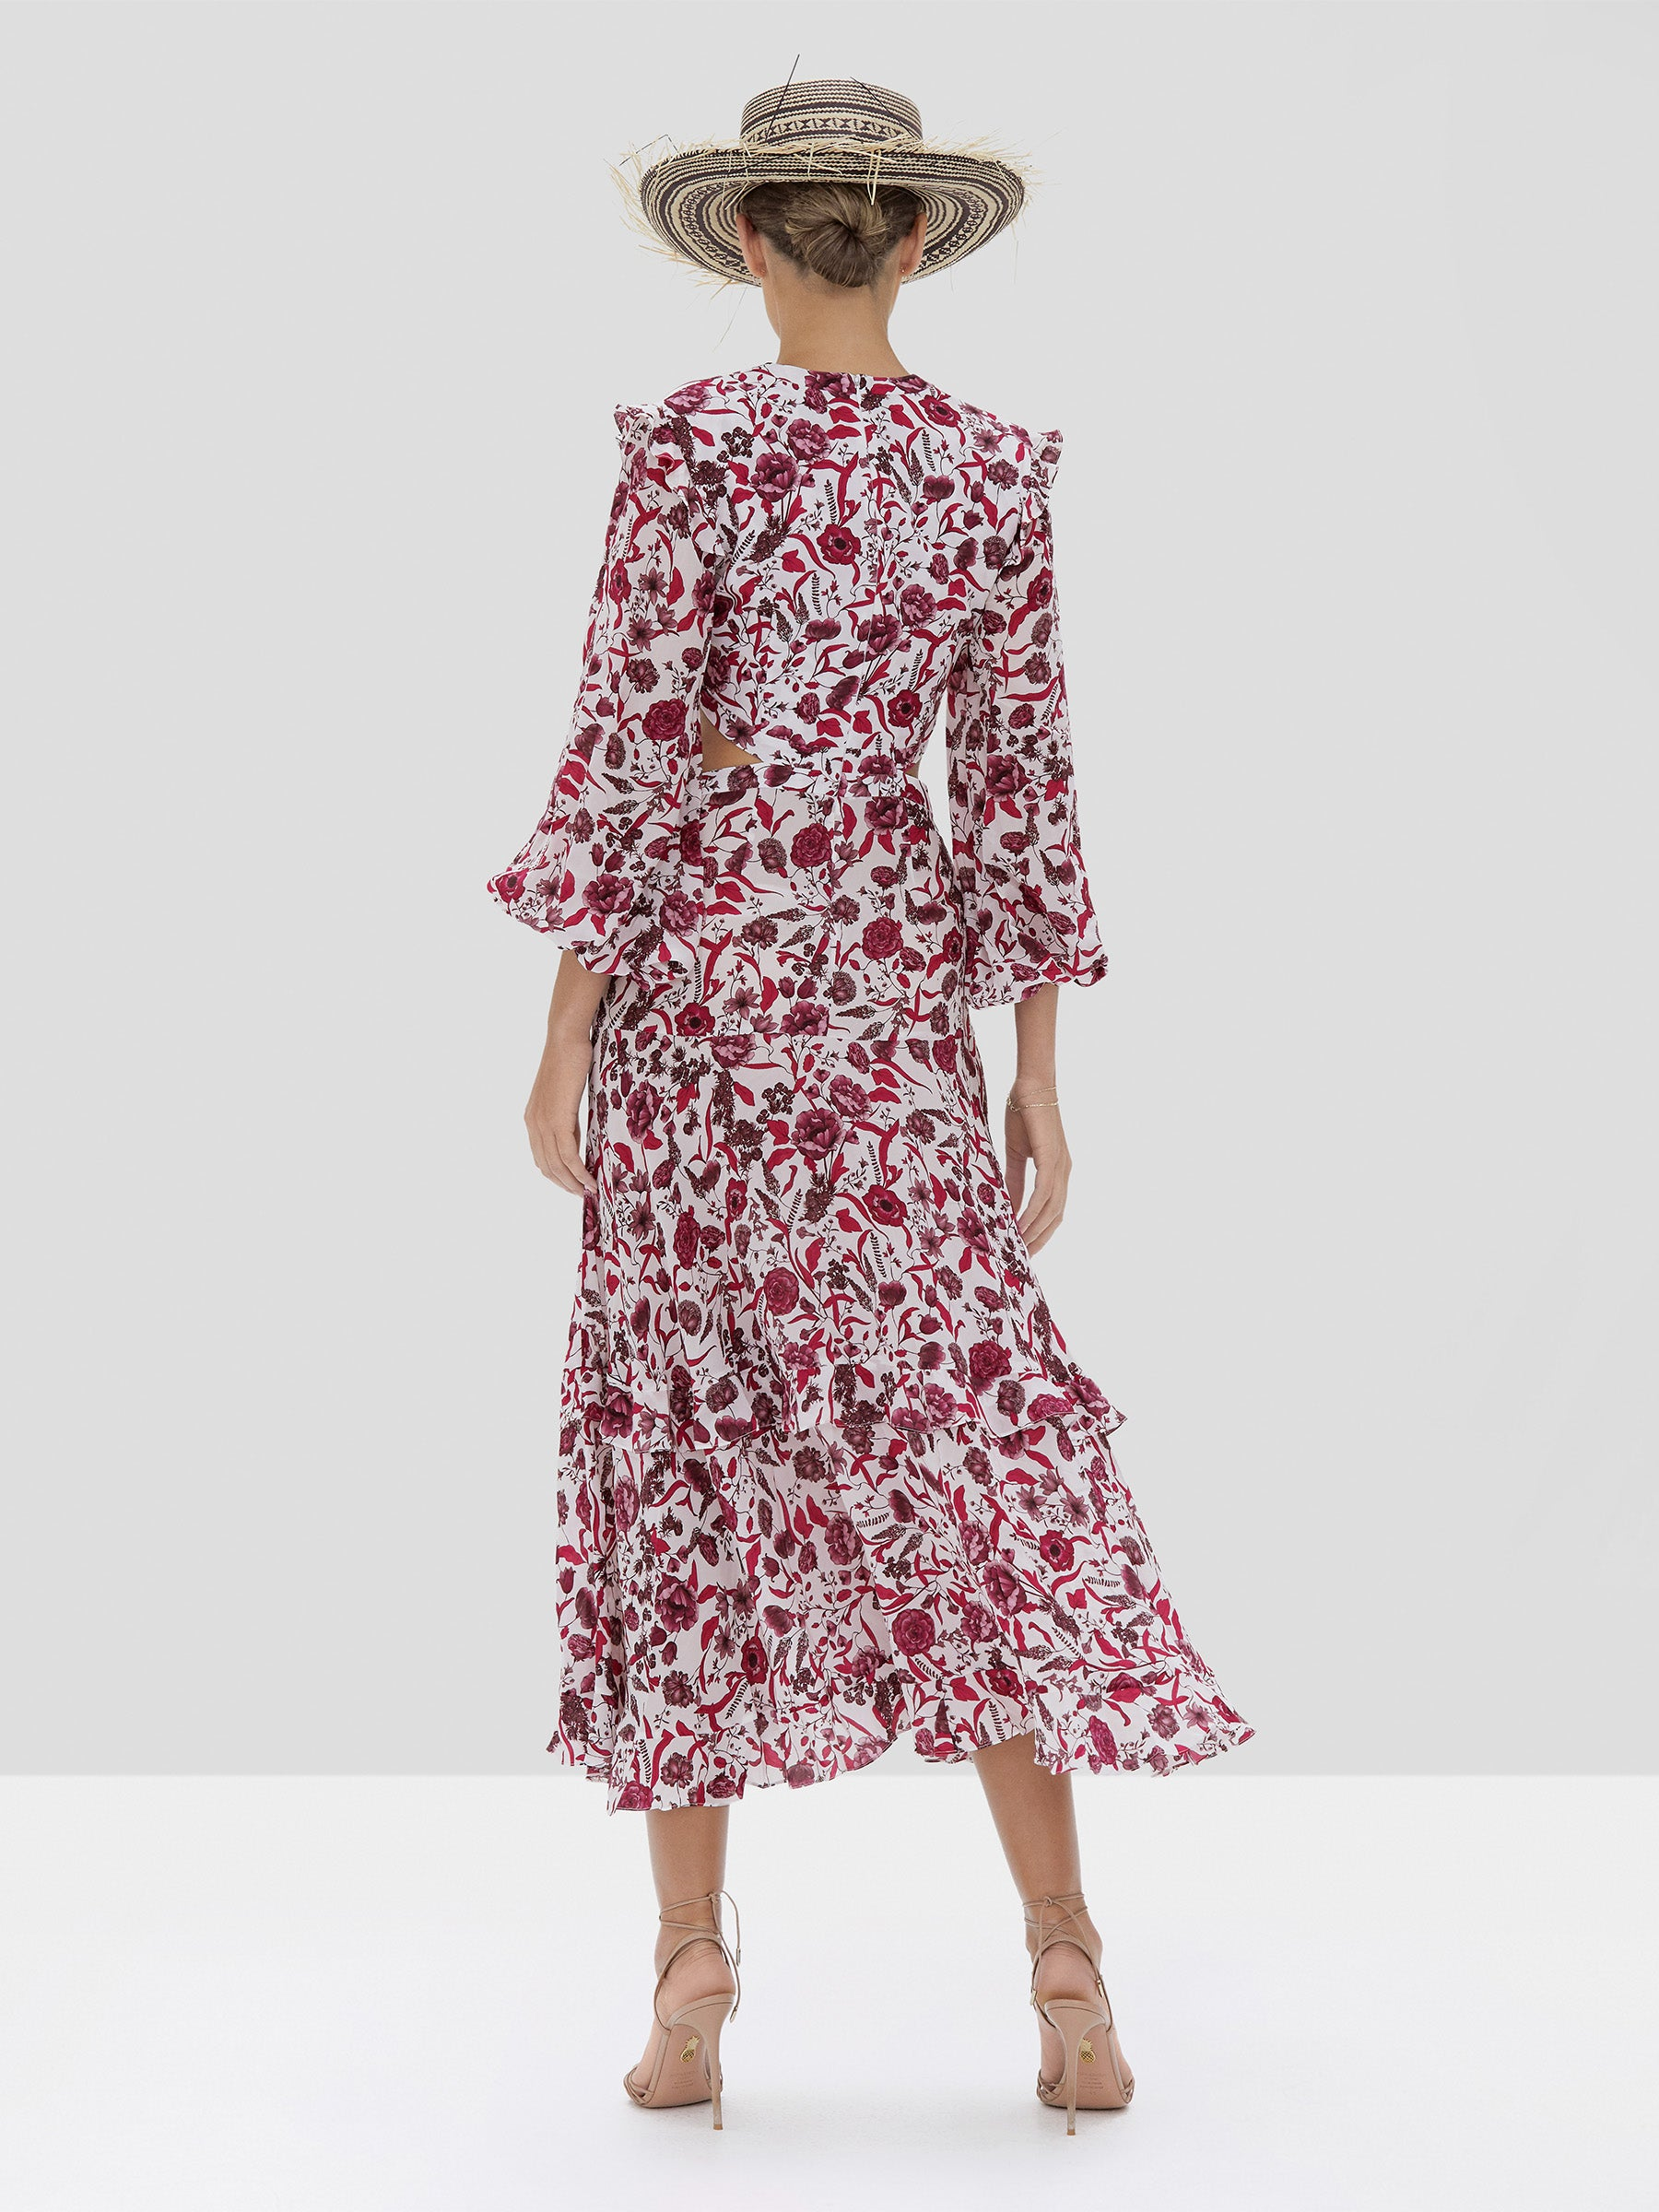 The Nakkita Dress in Berry Floral from the Spring Summer 2020 - Rear View